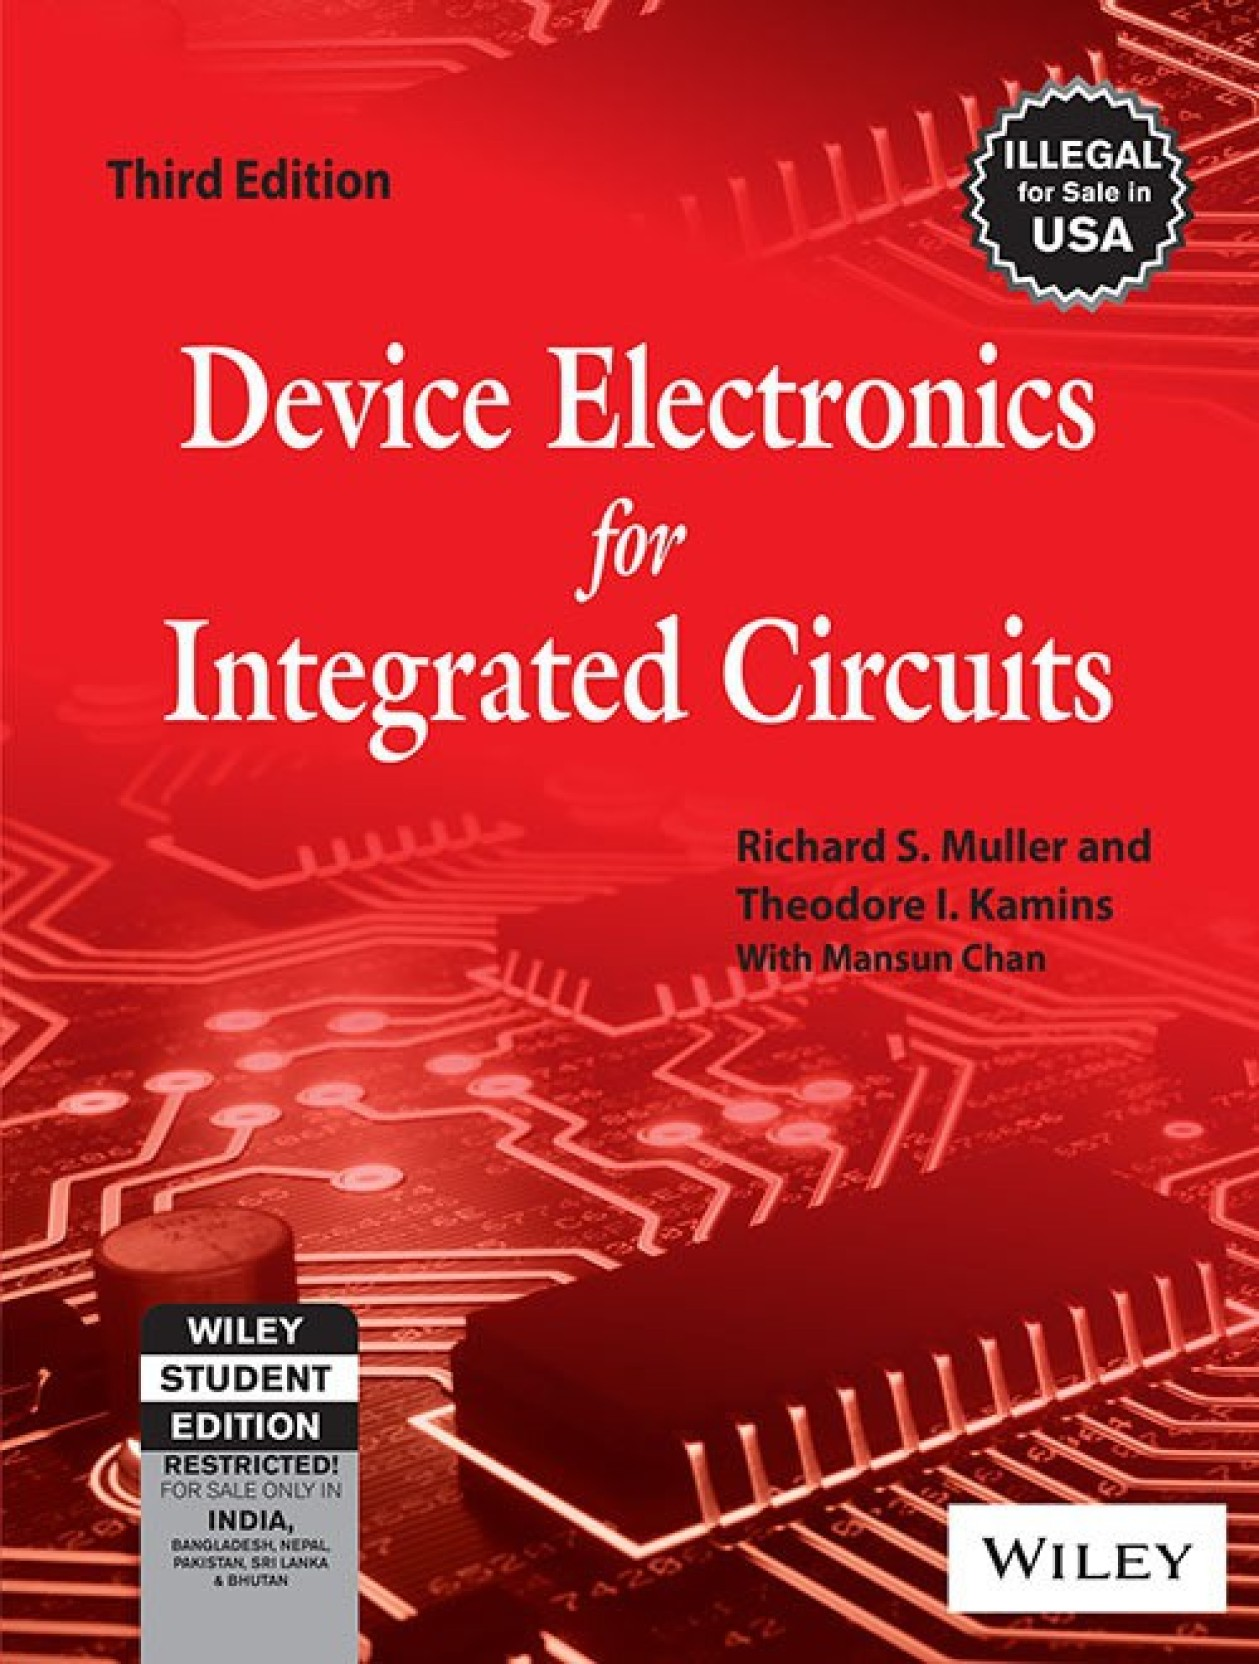 Device Electronics For Integrated Circuits 3rd Ed Edition Buy Logic Circuit Of Copy Machine Digital Life Learns Us Add To Cart